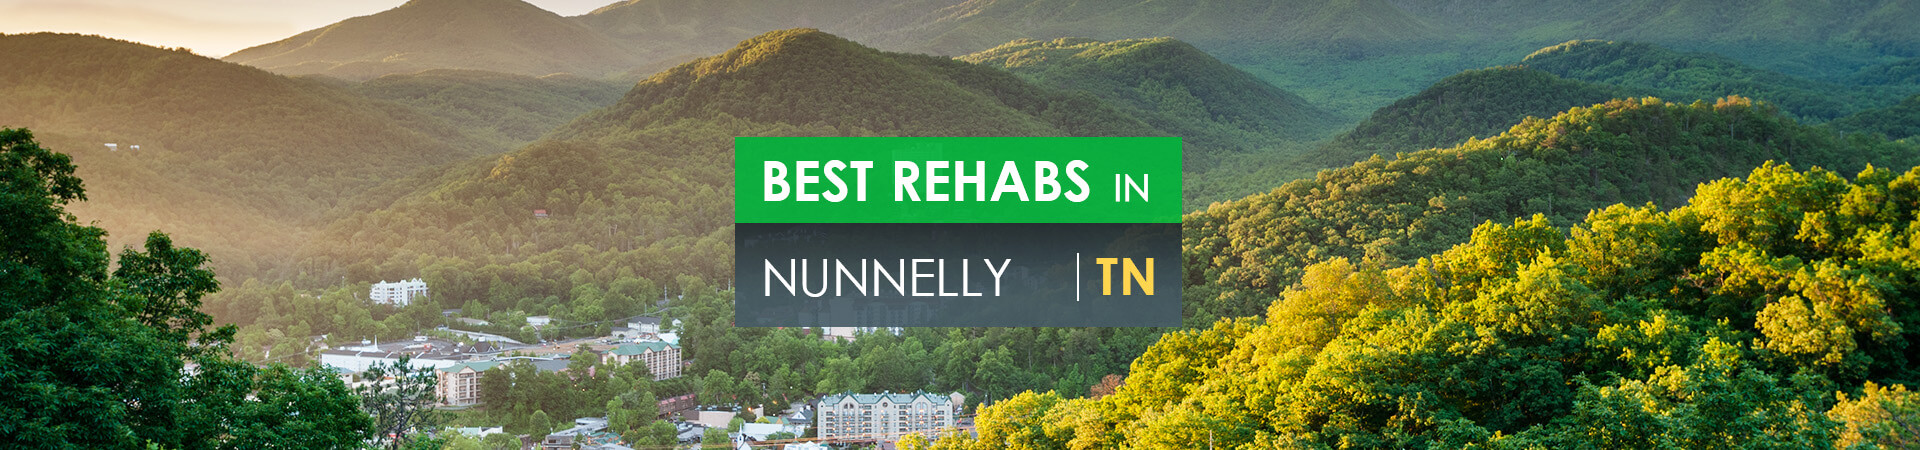 Best rehabs in Nunnelly, TN